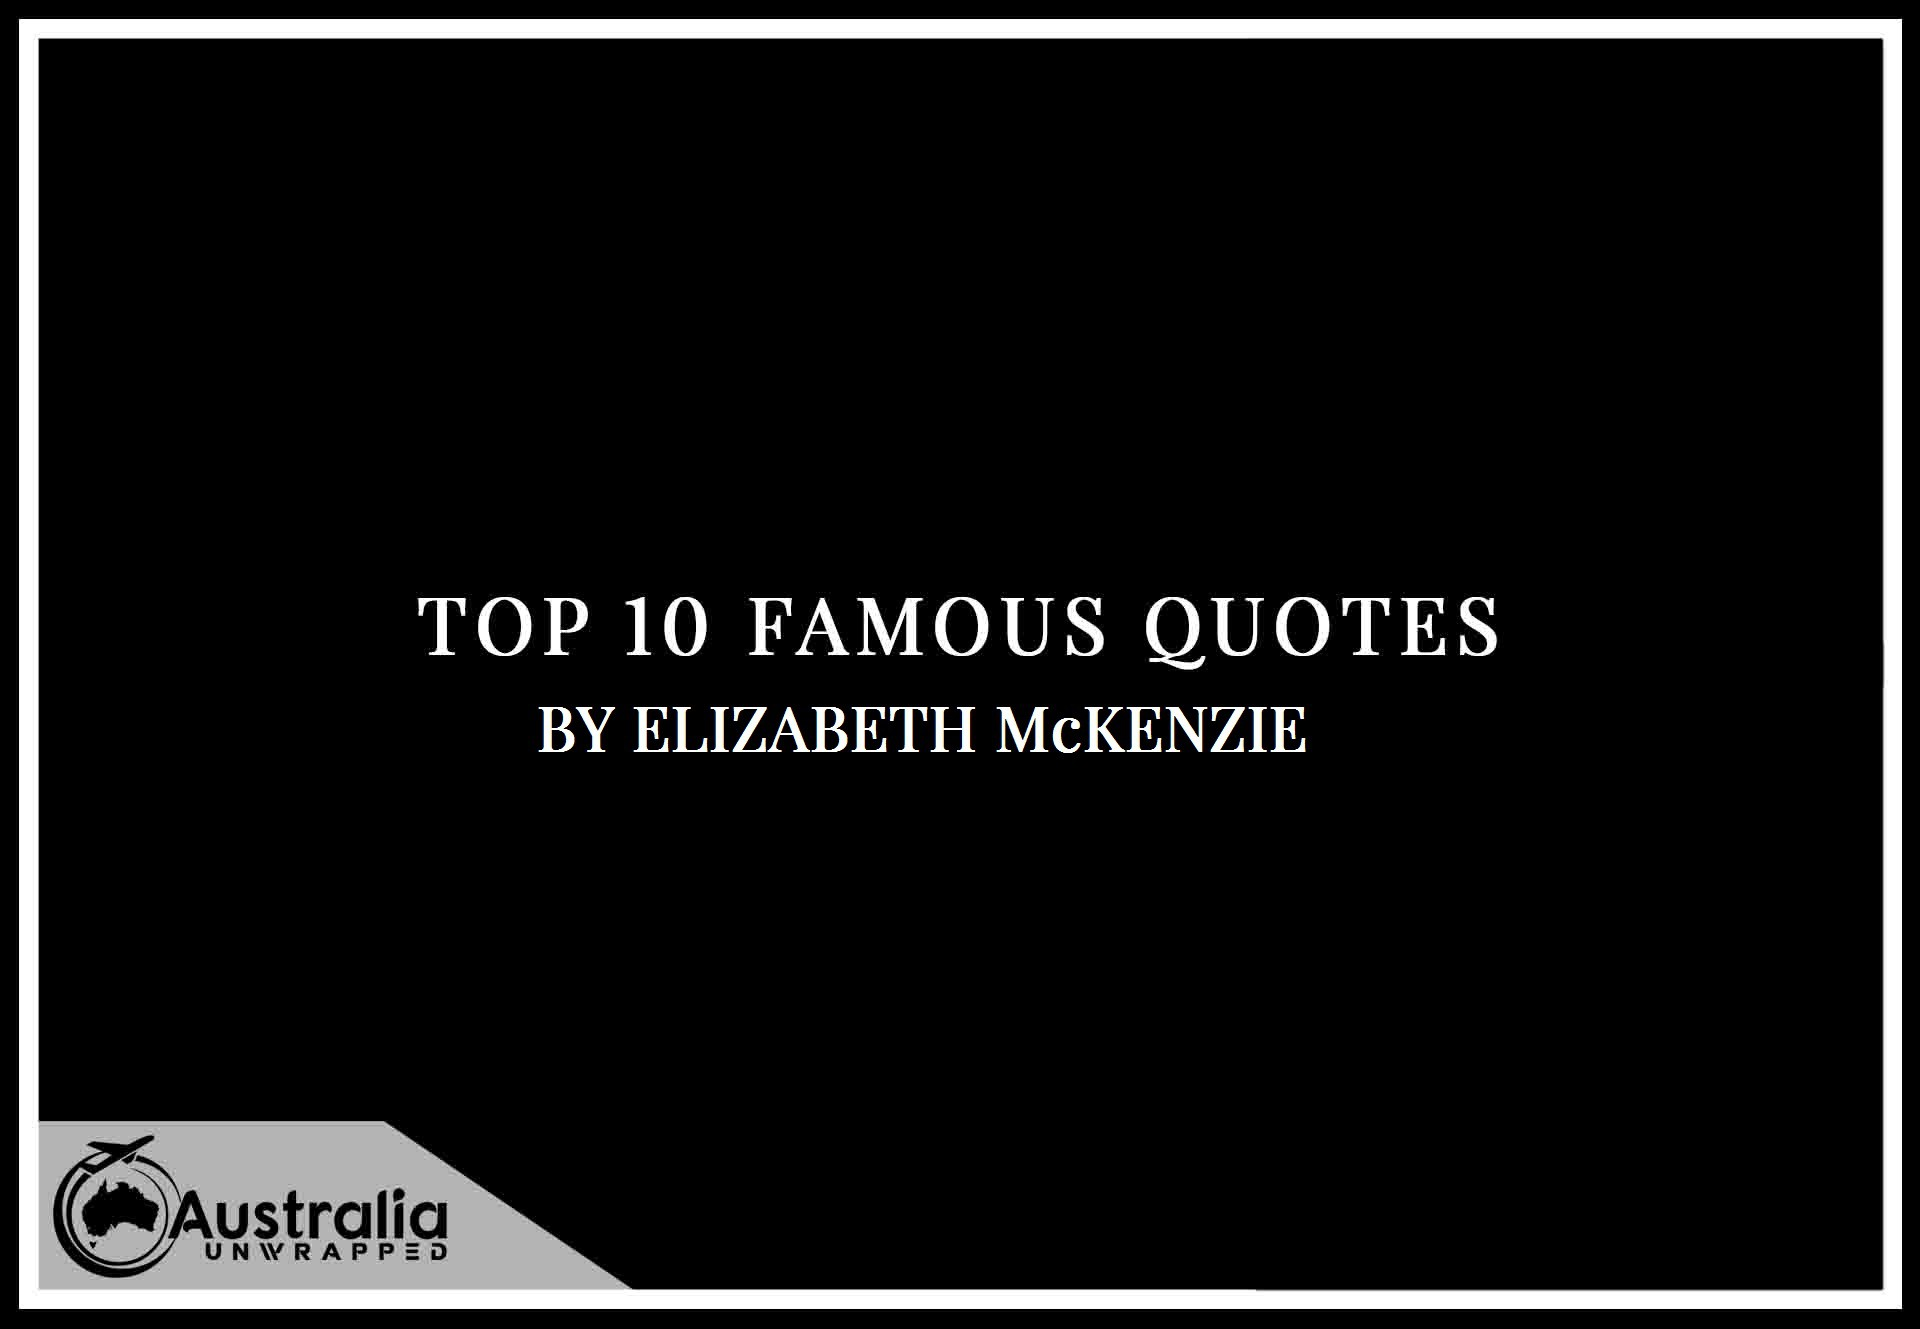 Elizabeth Mckenzie's Top 10 Popular and Famous Quotes